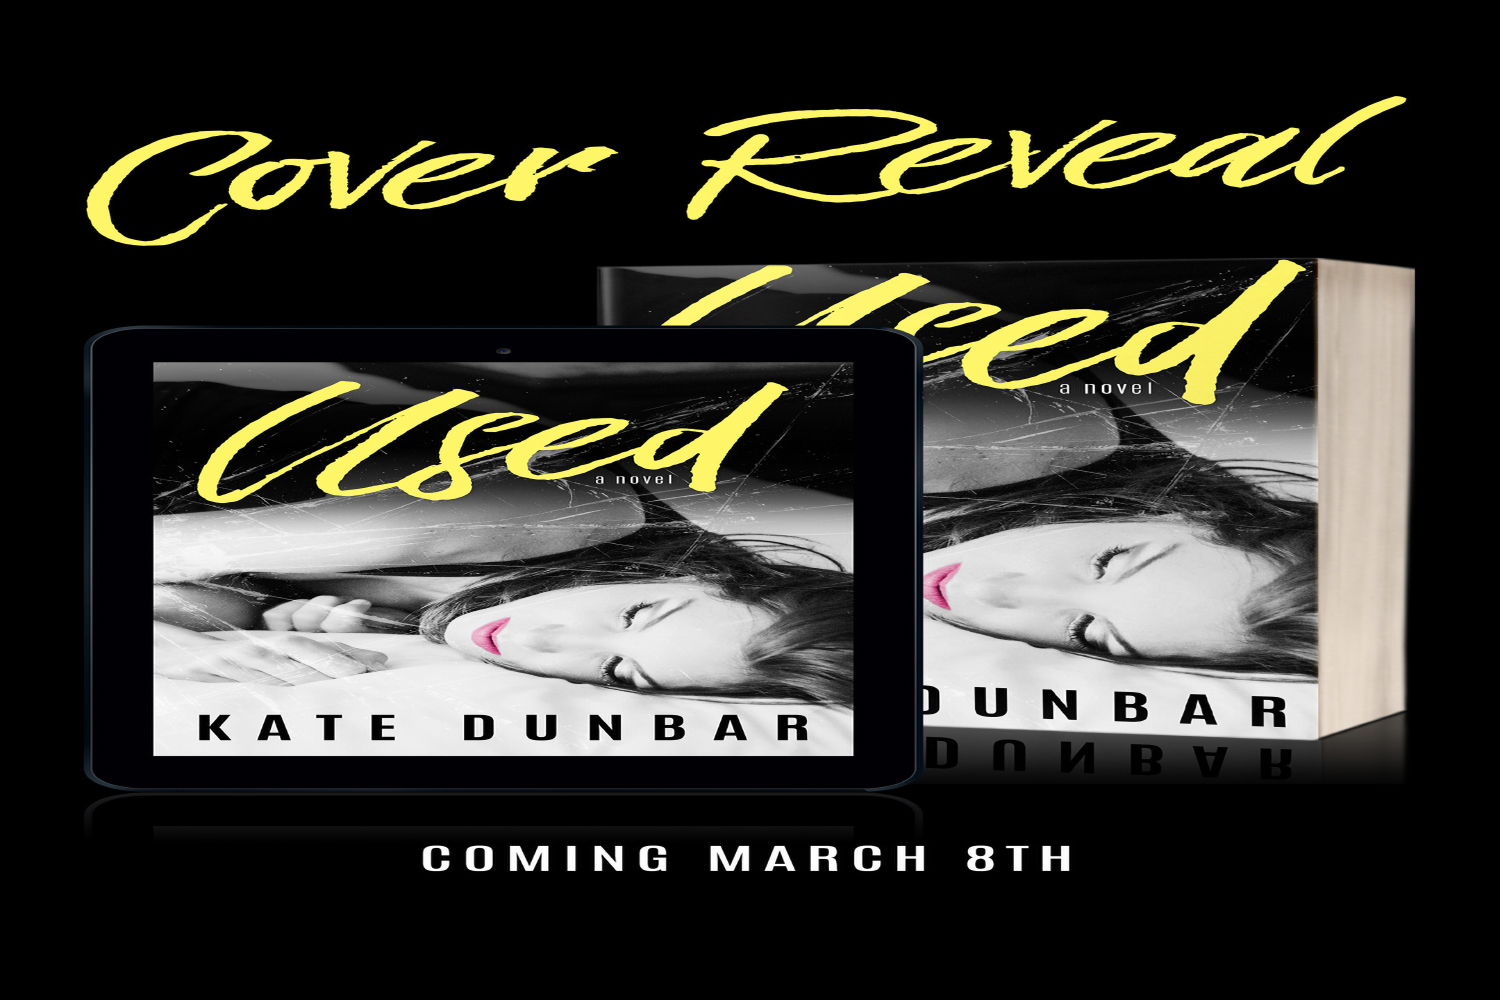 Used by Kate Dunbar Cover Reveal